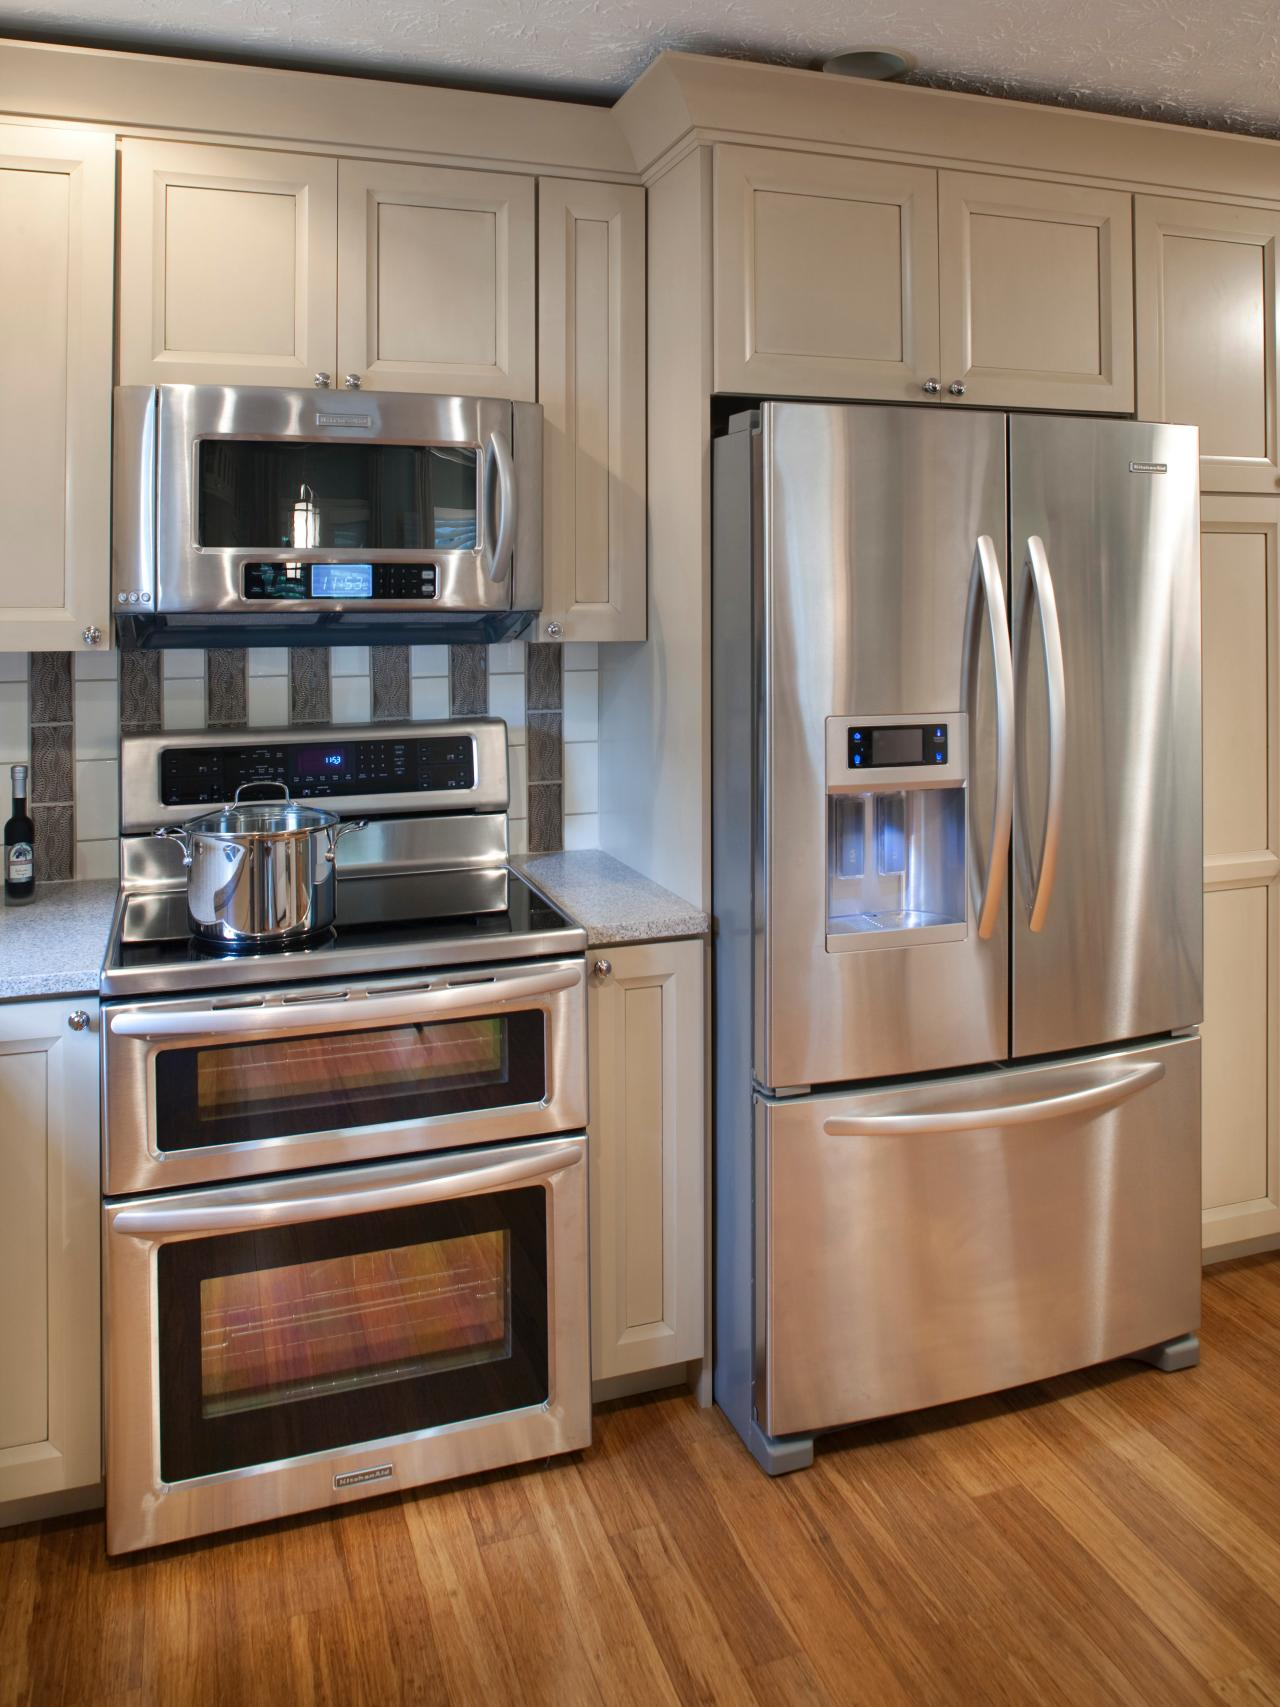 Complete Your Kitchen With Double Wide Refrigerator For Optimal Need Homesfeed